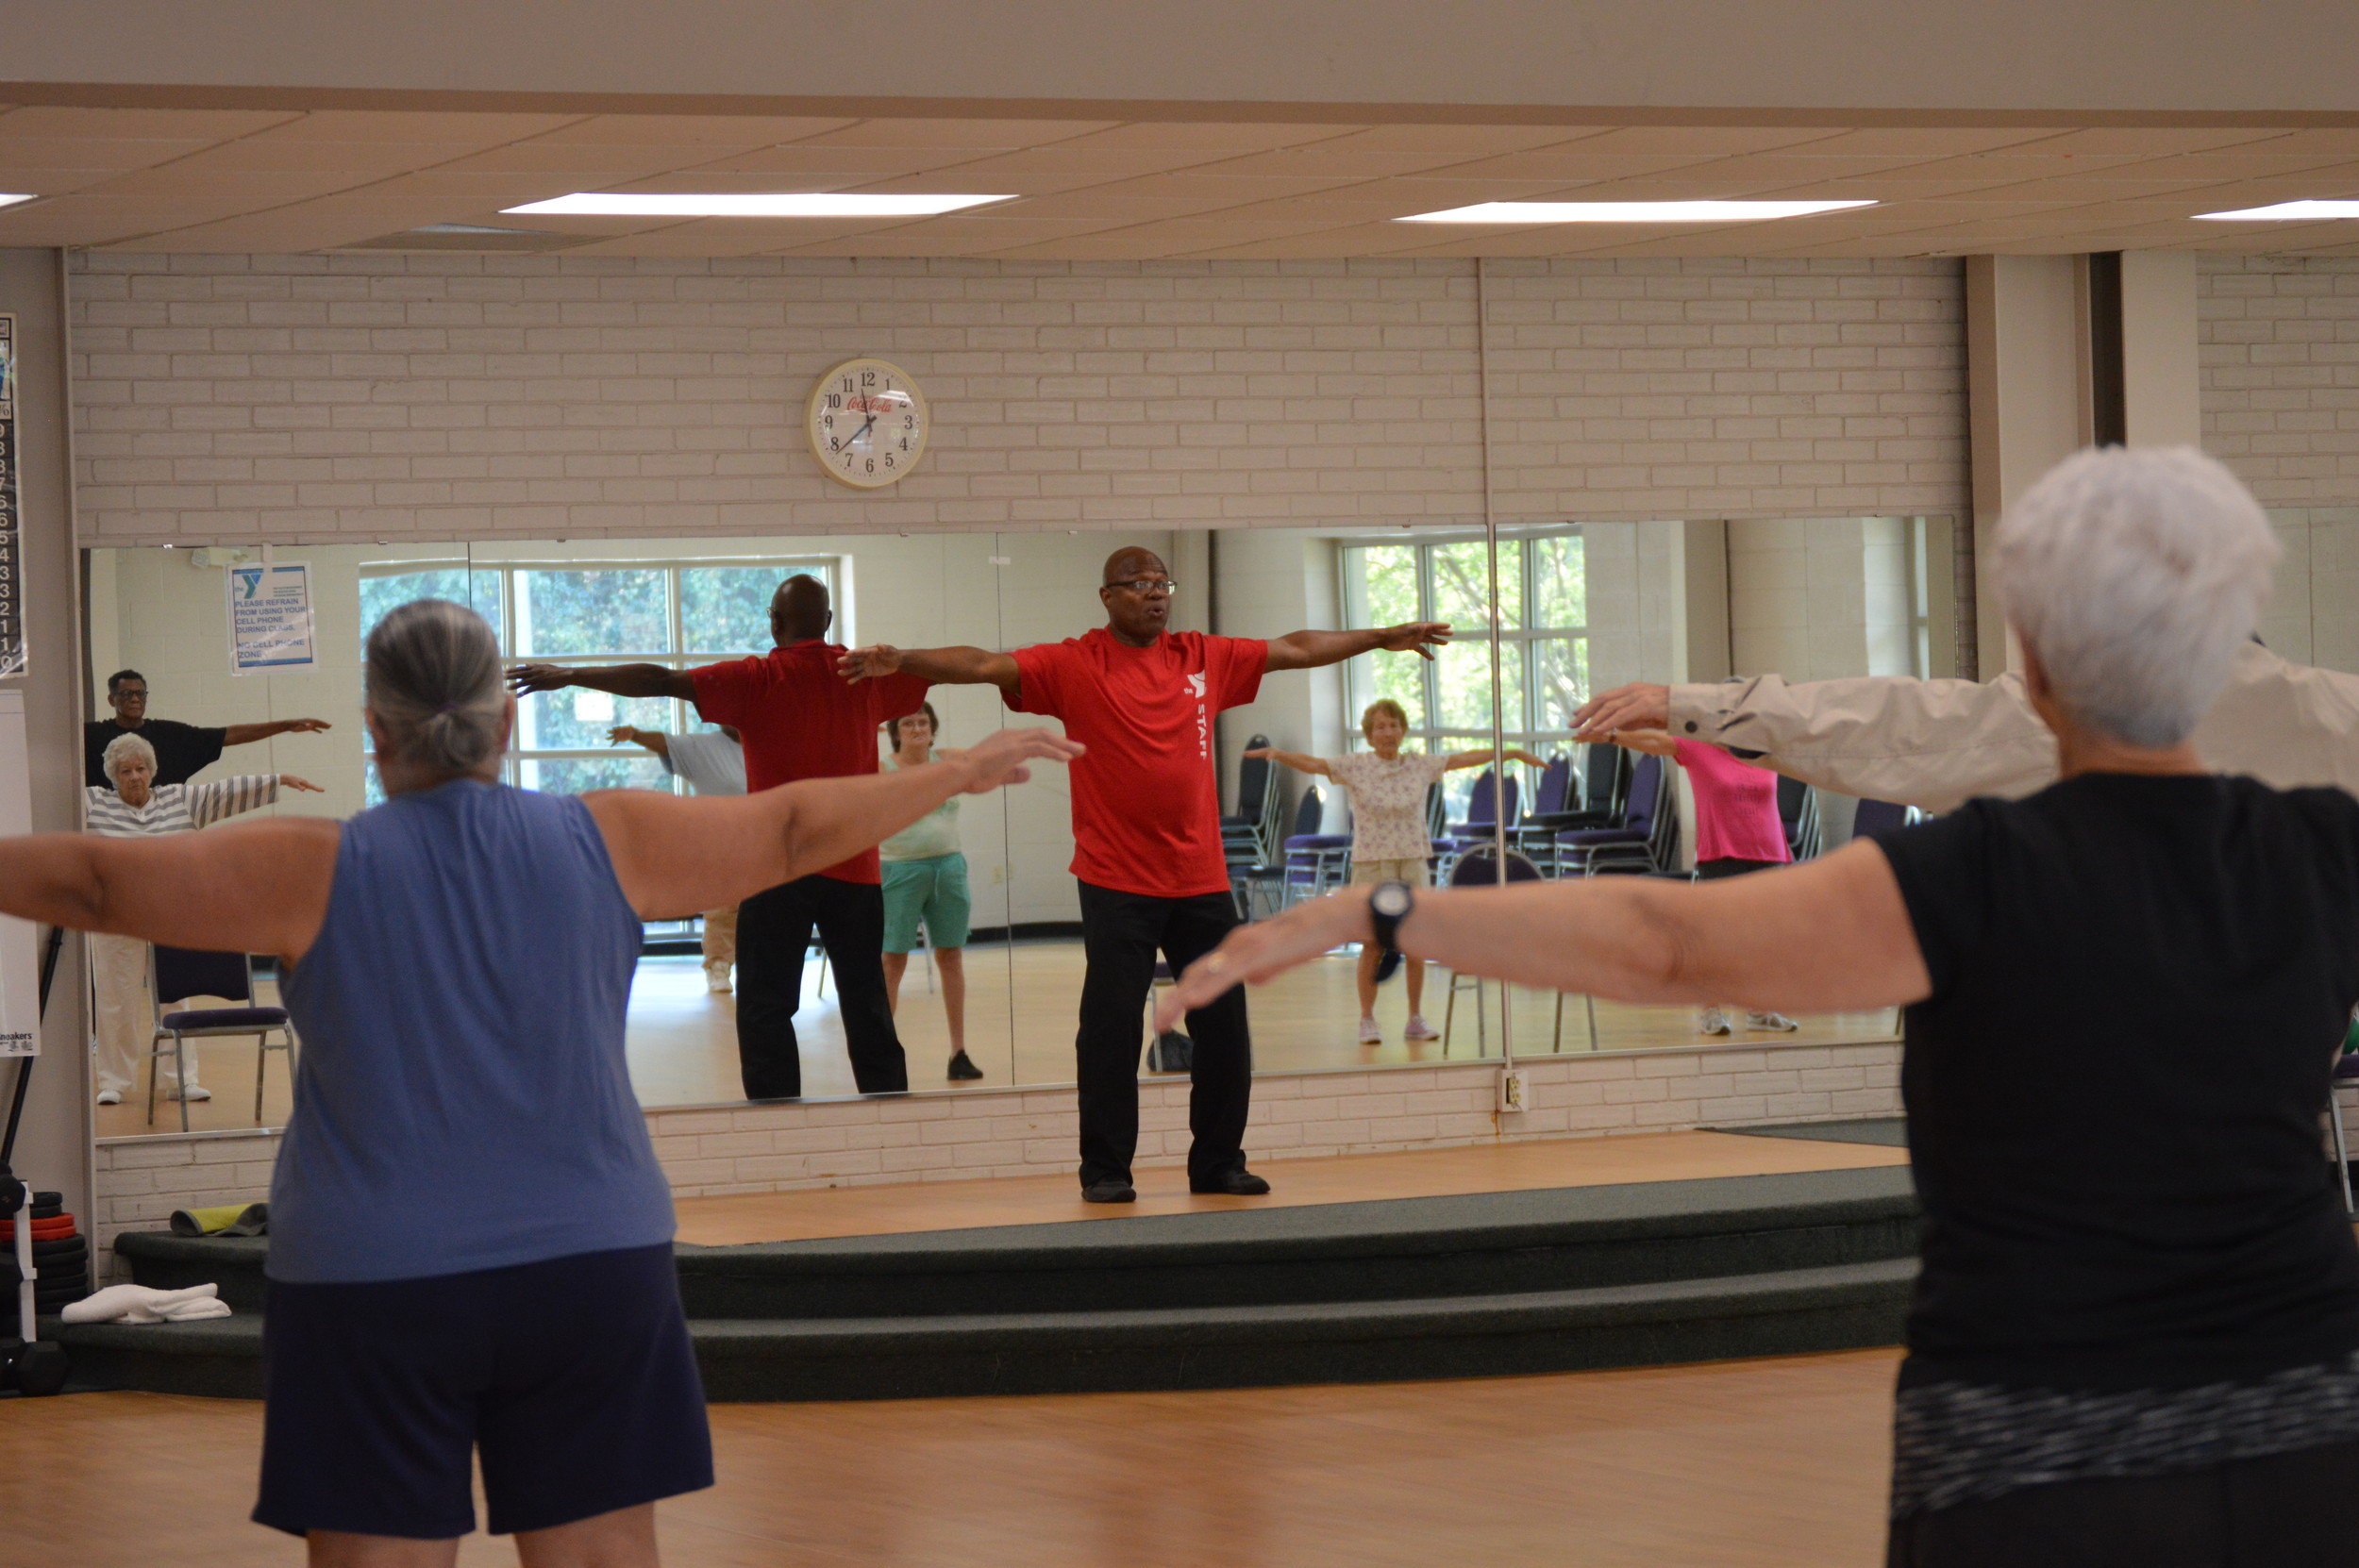 Students do a stretching and breathing exercise during Joseph Whiting's Tai Chi class at Sumter Family YMCA on Friday.